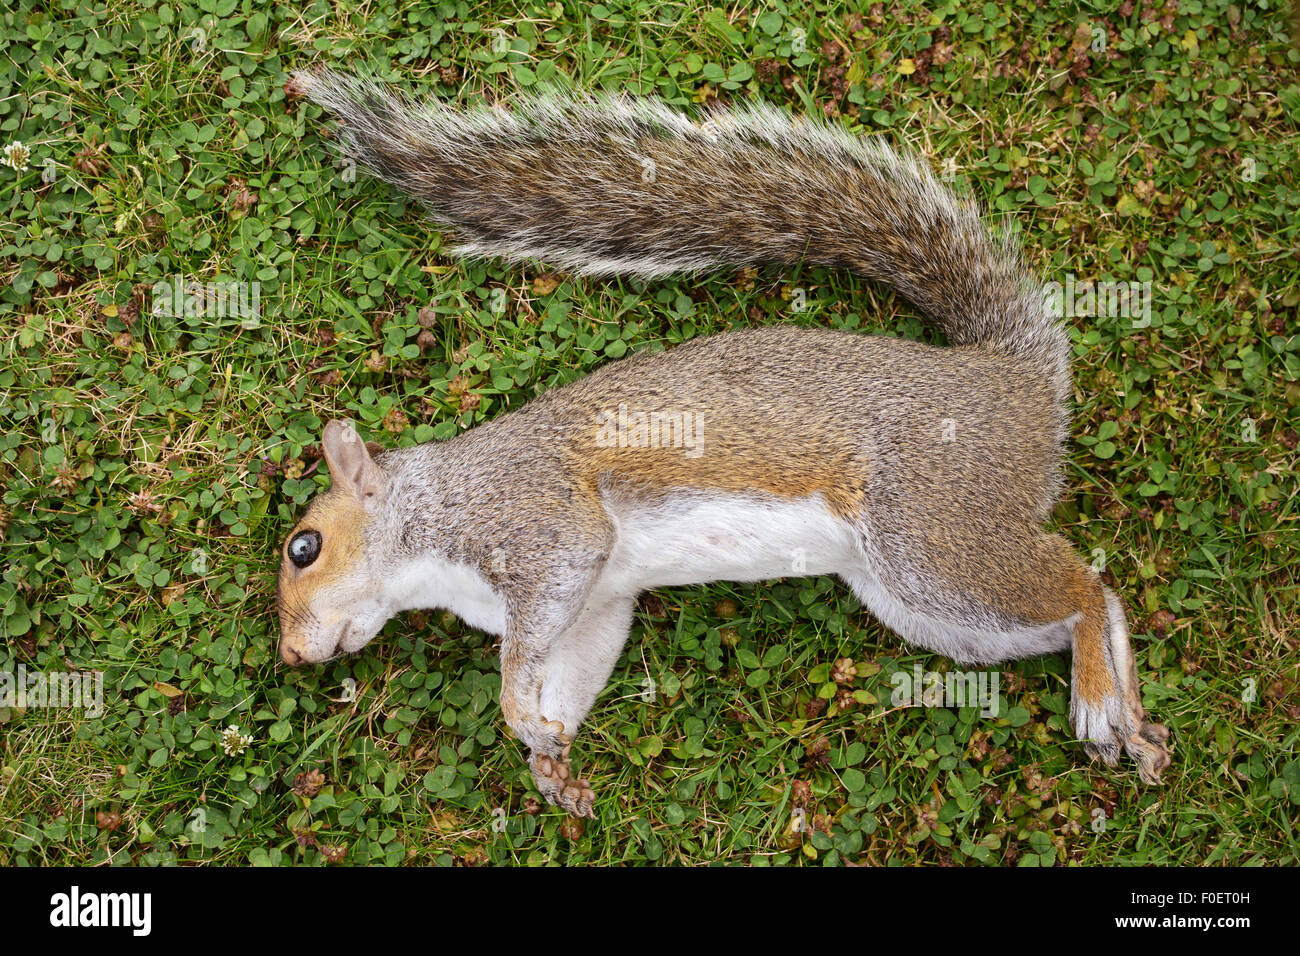 Dead female squirrel with a damaged eye, lying on green grass - Stock Image